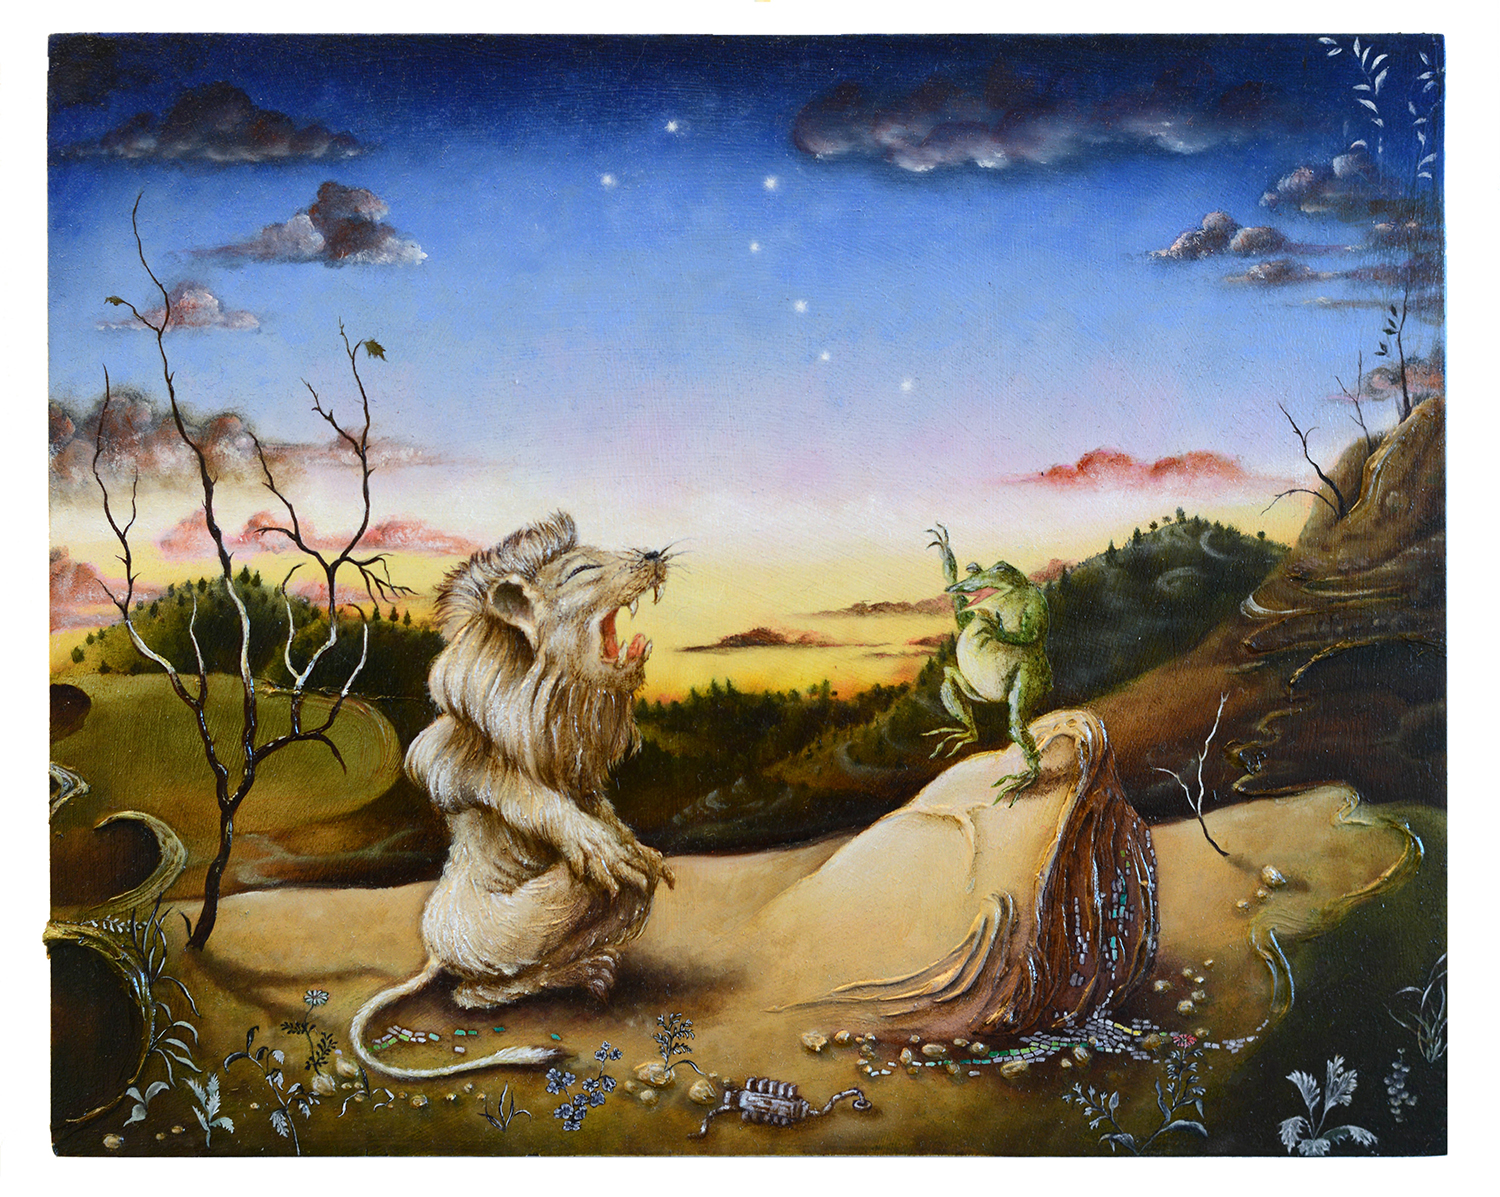 A frog, stood upright on a rock, confronts a lion sat on its hind legs in front of a starry sky as dawn, or fire, breaks over the horizon.